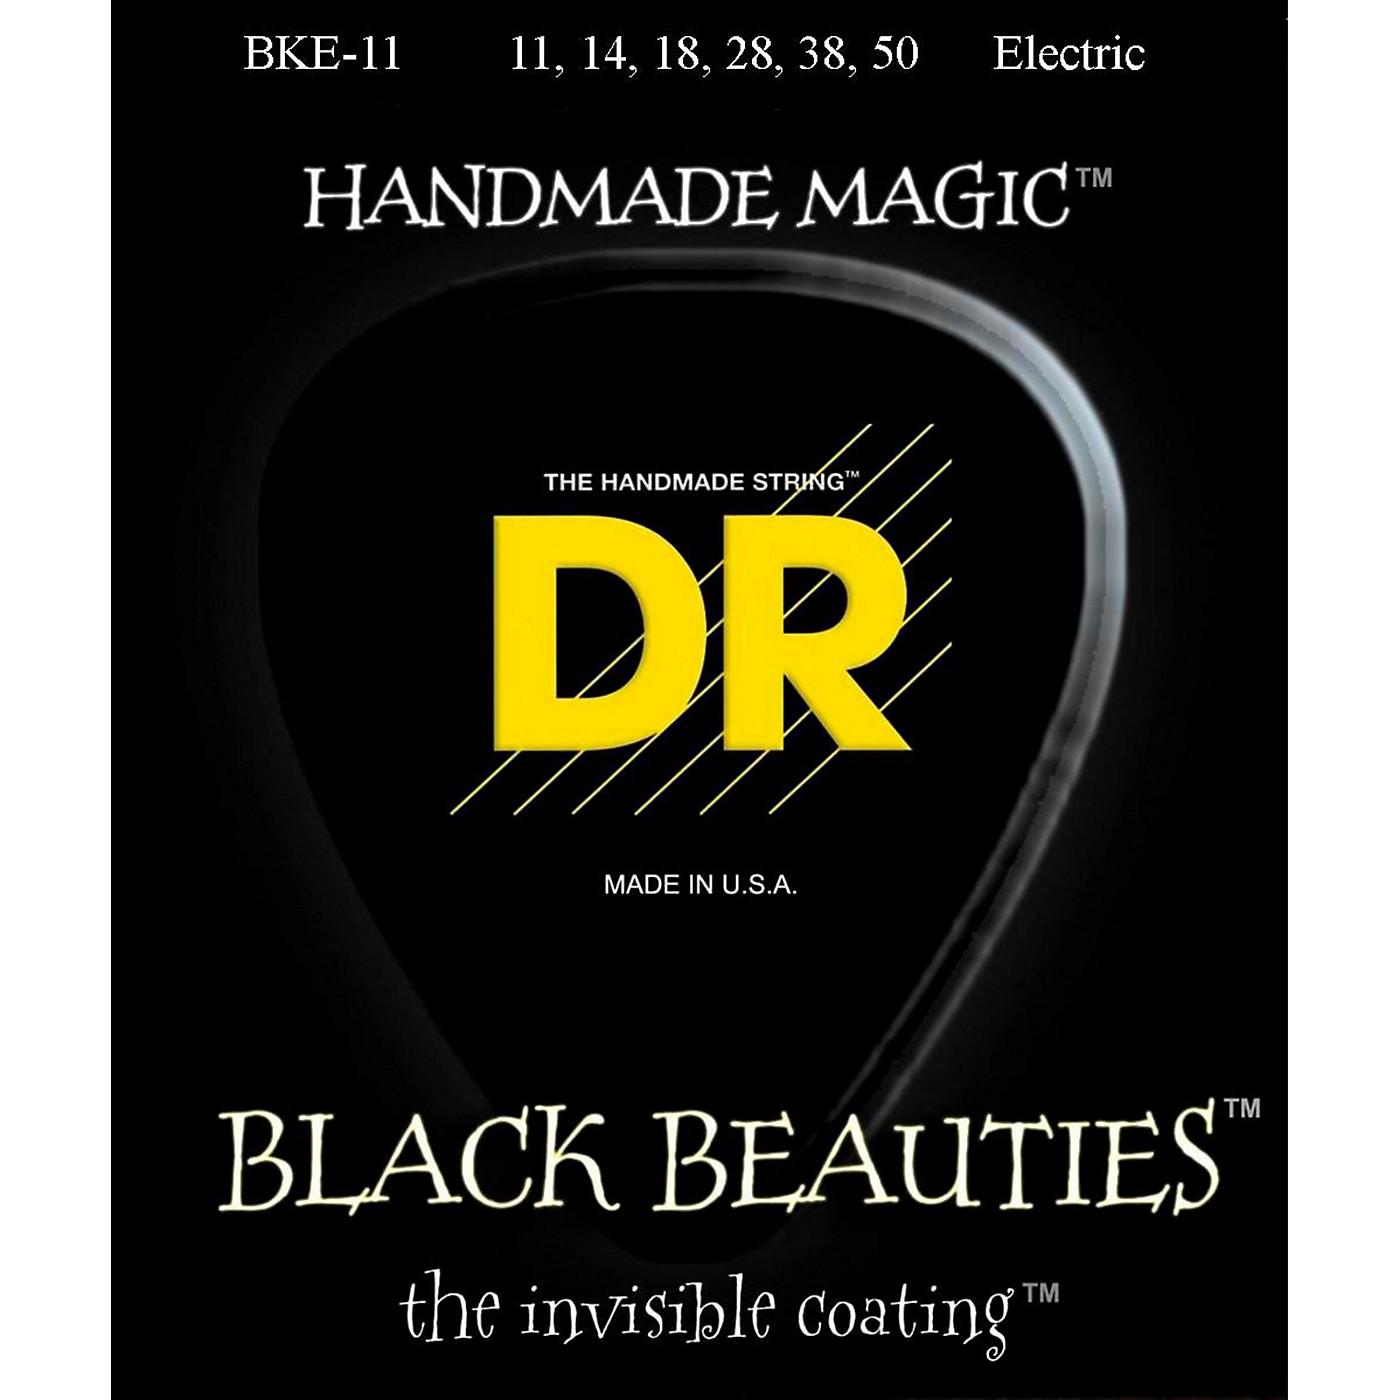 DR Strings Extra Life BKE-11 Black Beauties Heavy Coated Electric Guitar Strings thumbnail